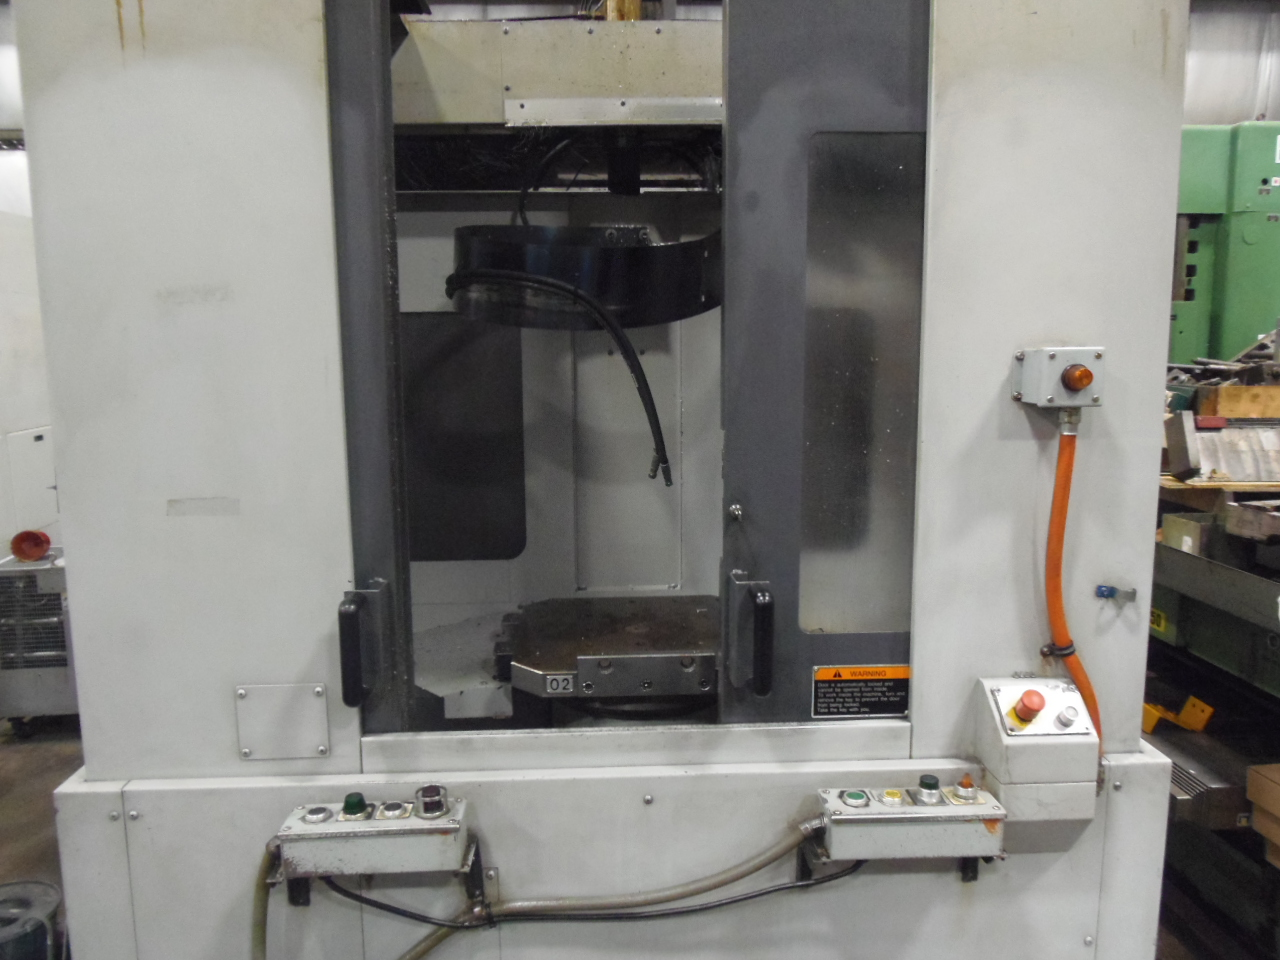 NH5000/40 MORI SEIKI, 2003, THRU SPINDLE COOLANT, 1 DEGREE, MSC501 WITH MAPPS, 60 ATC, 40 TAPER, 2 PALLET. 14,000 RPM